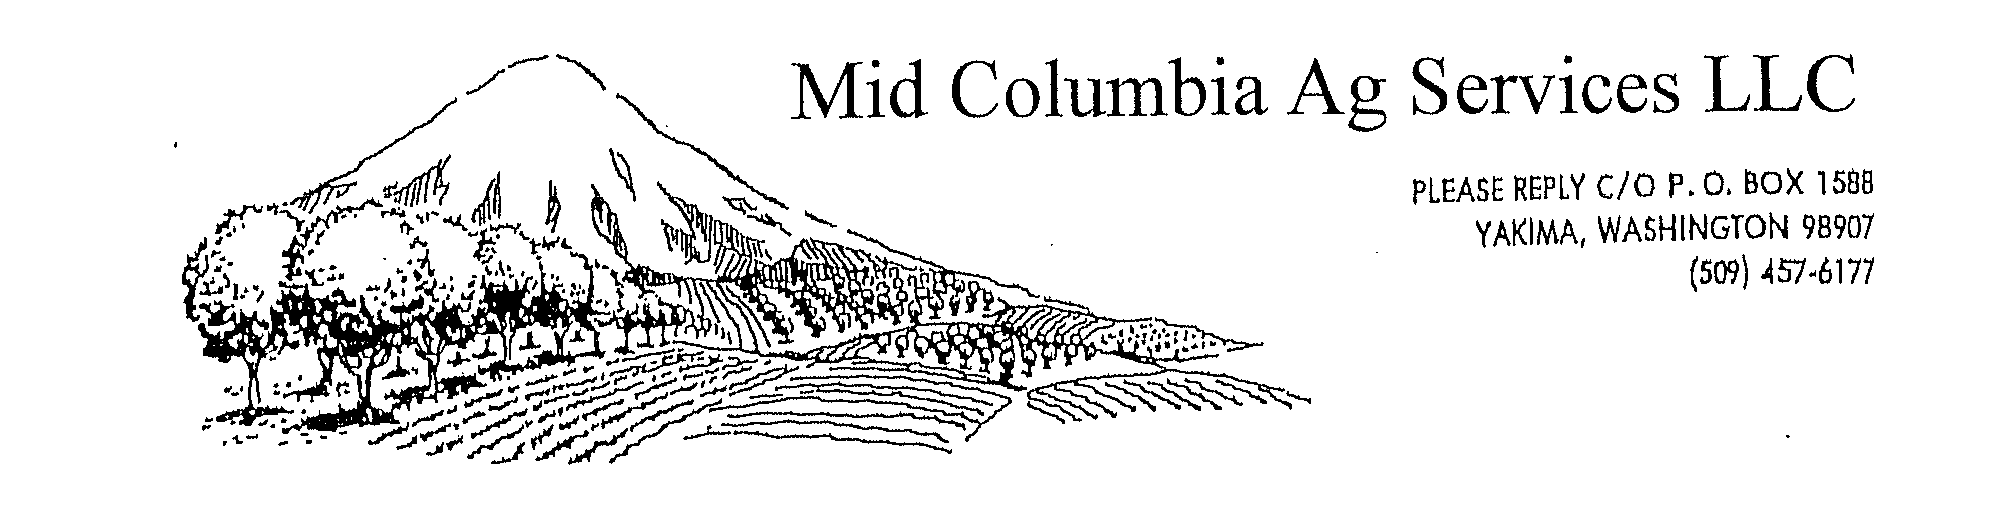 Mid Columbia Ag Services LLC